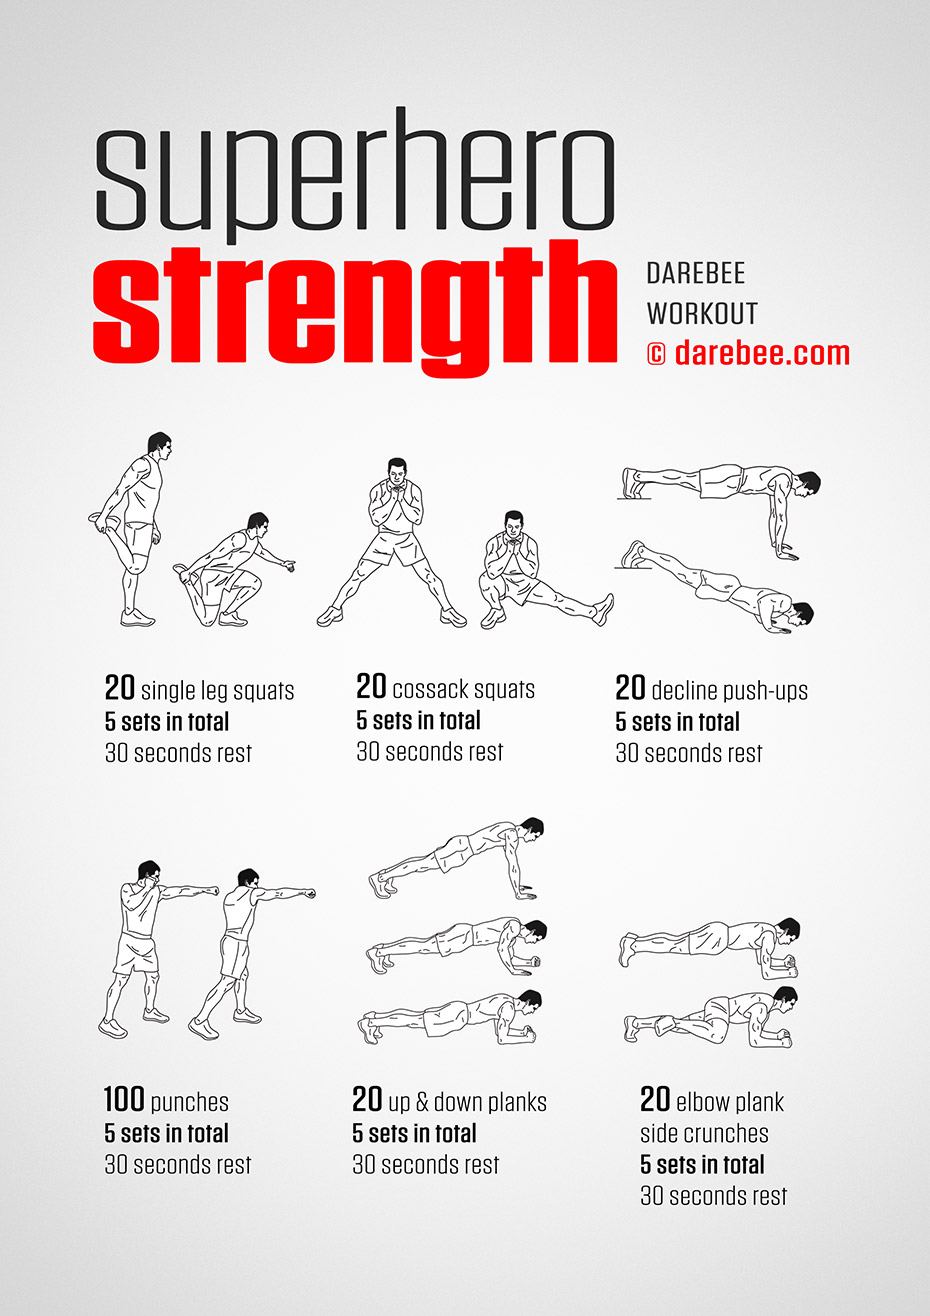 Superhero Strength free workout from Darebee